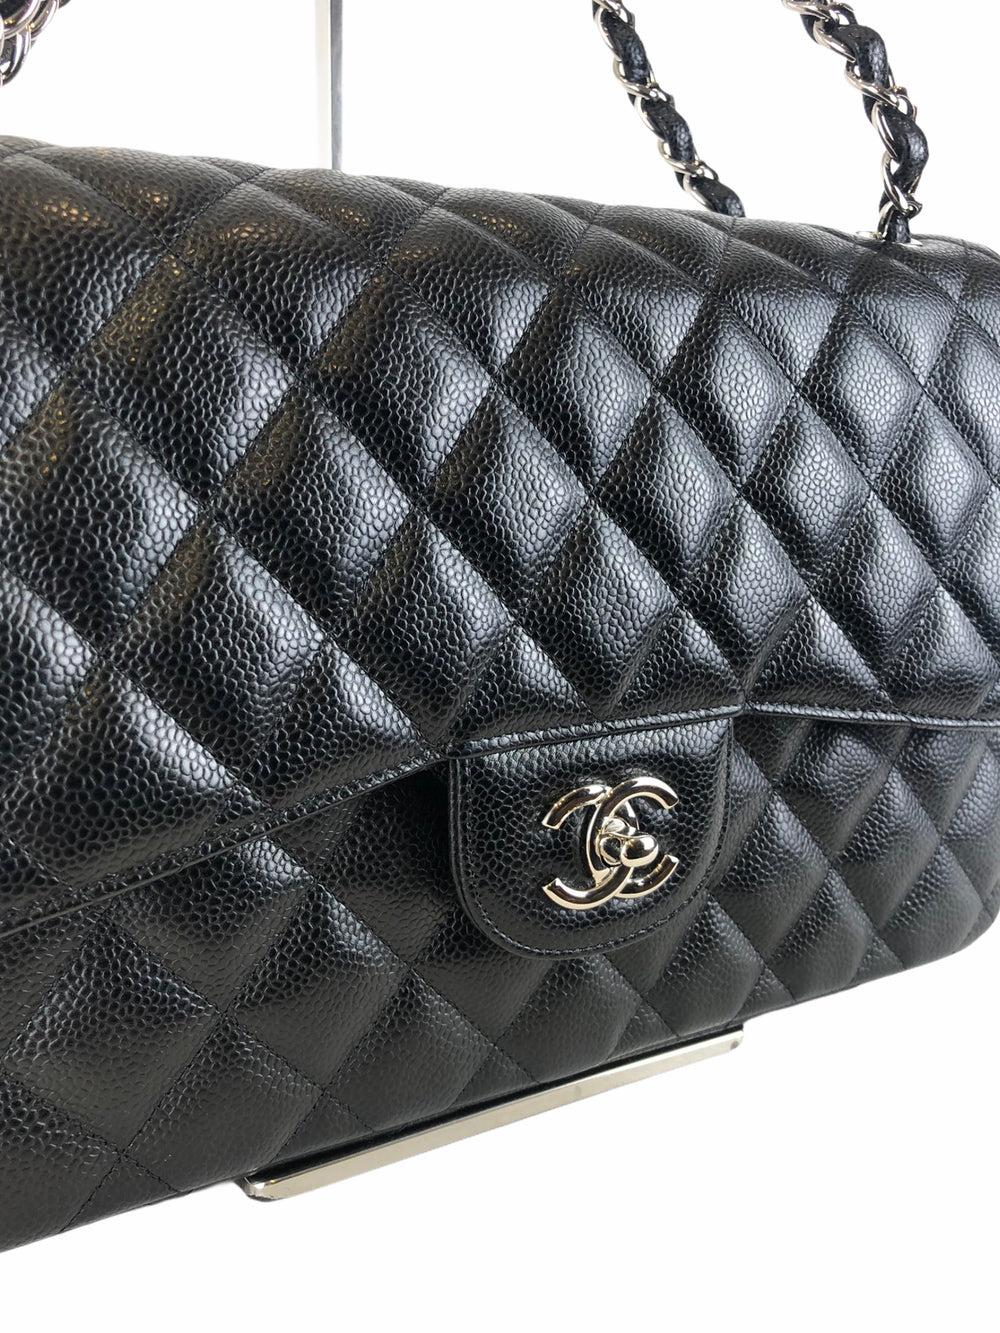 Chanel Black Caviar Leather